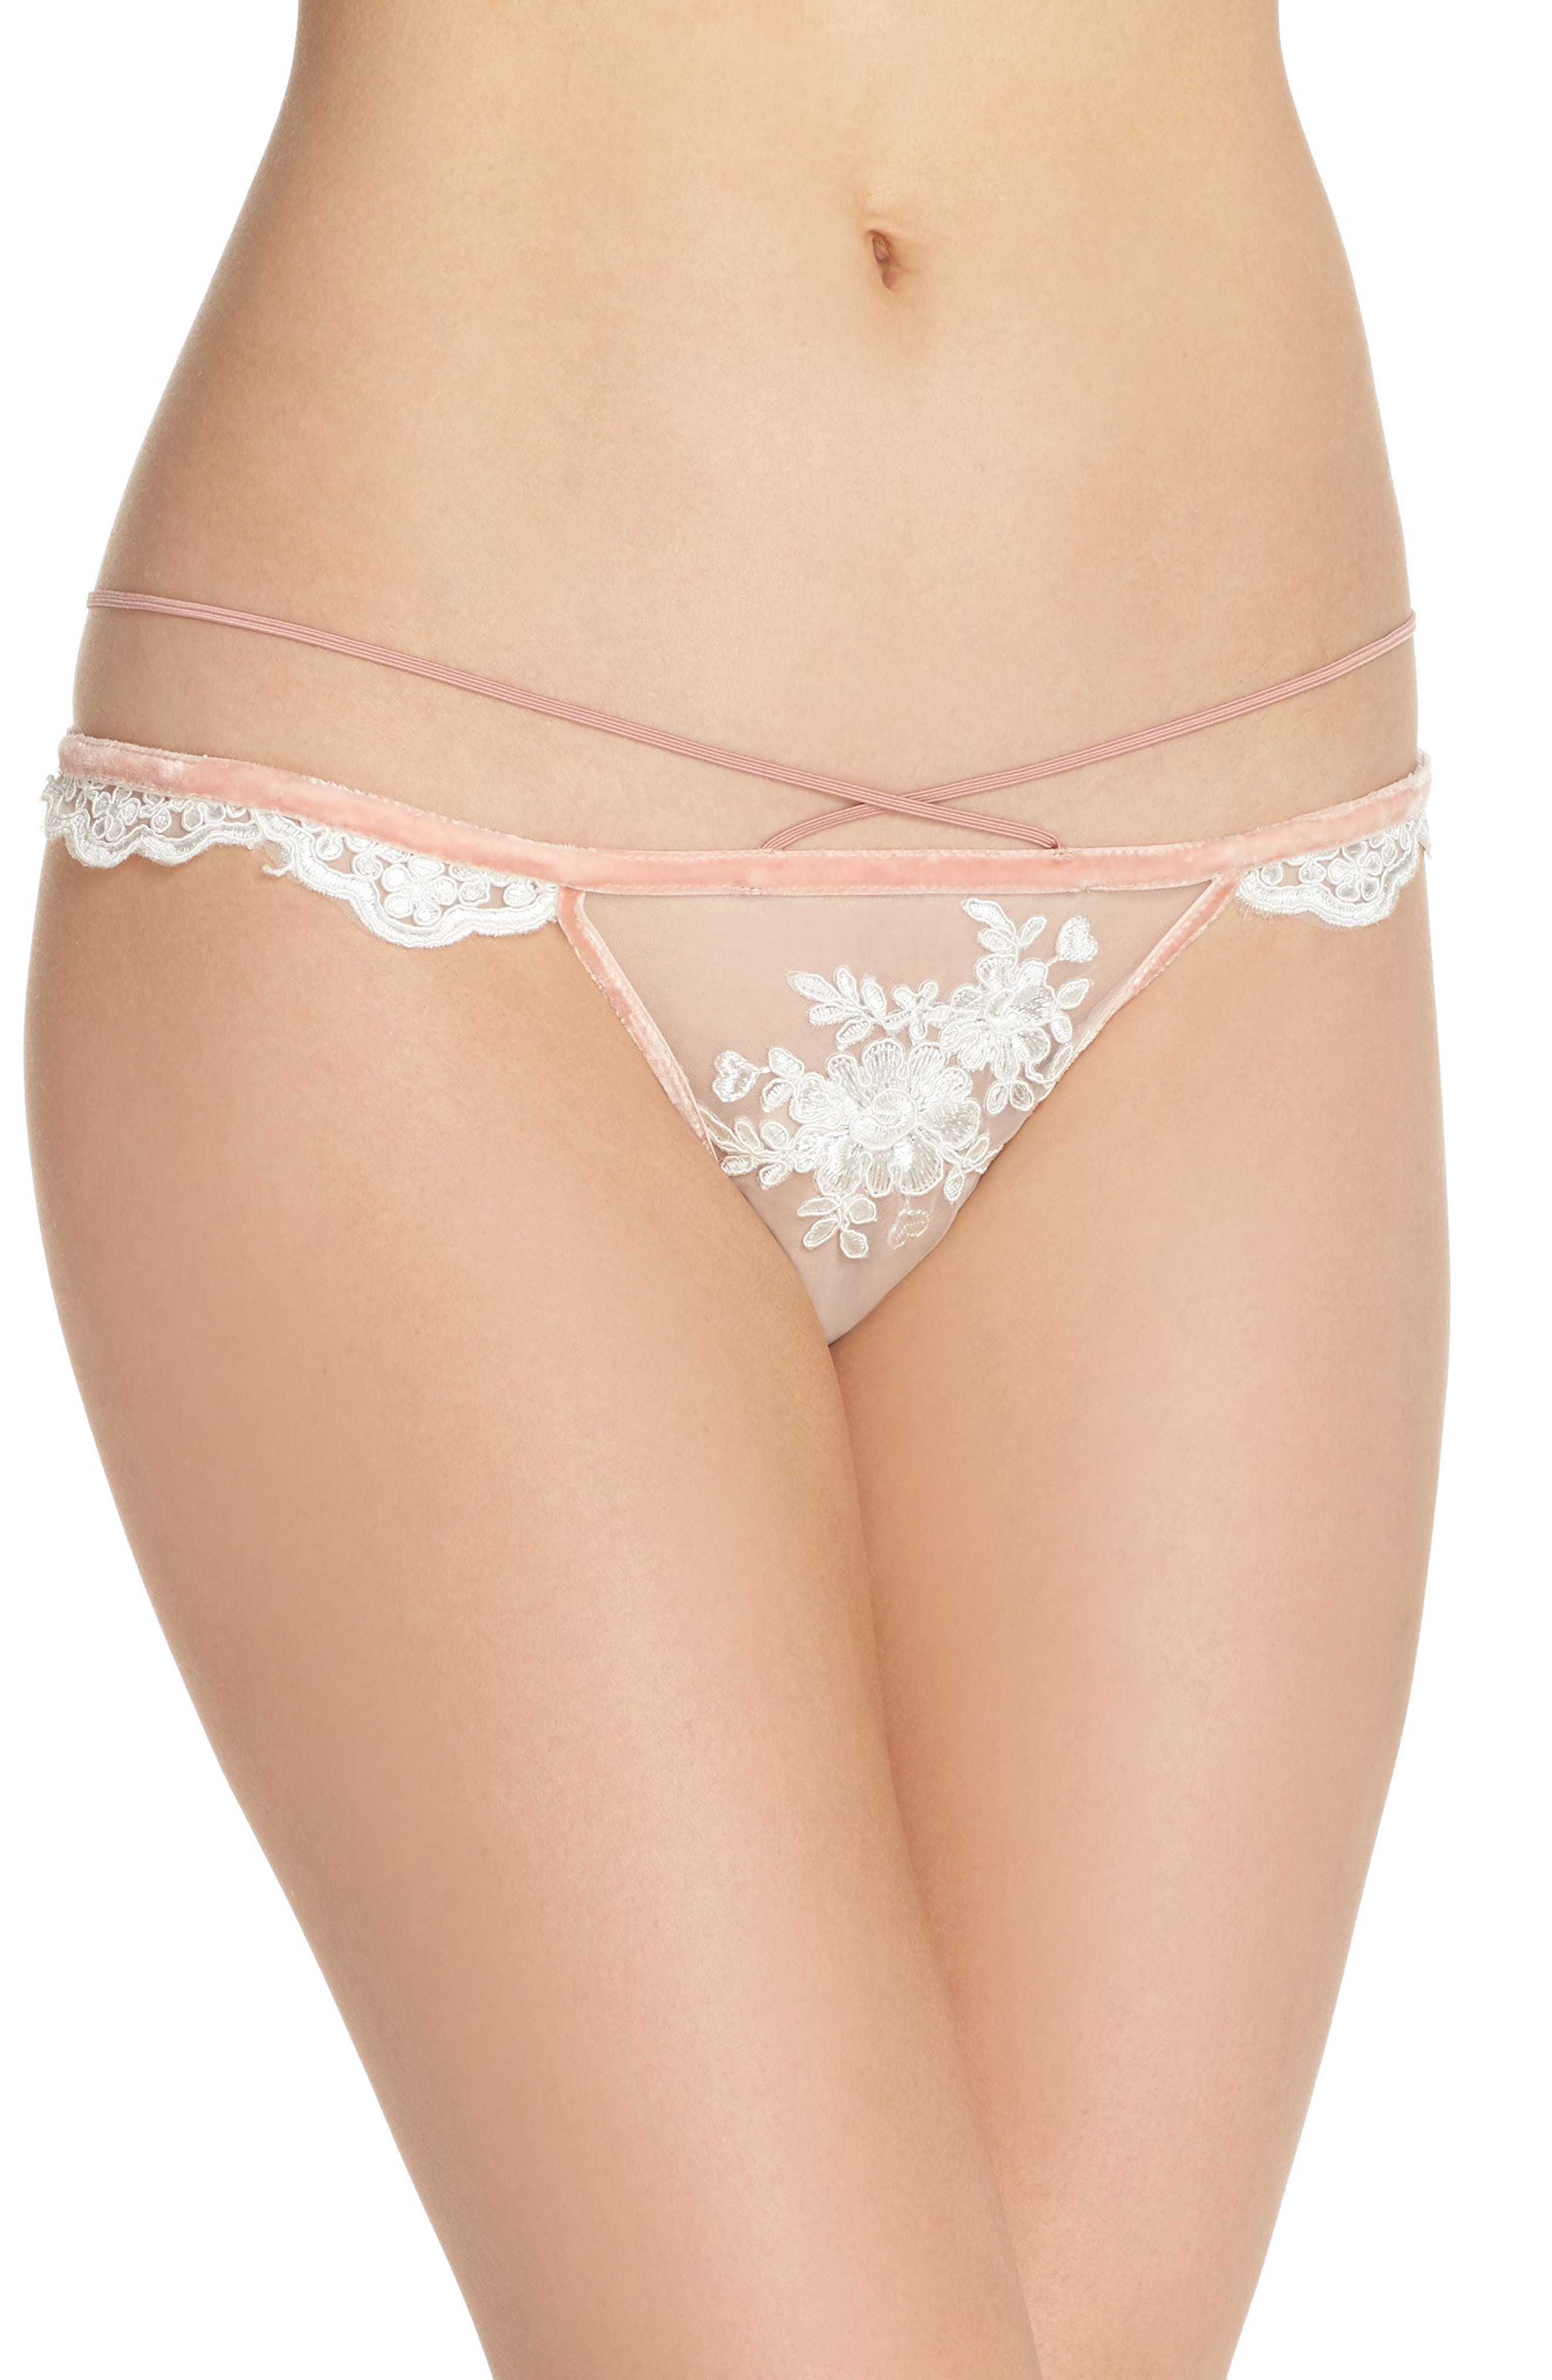 Main Image - For Love & Lemons Noemi Strappy Scallop Lace Thong